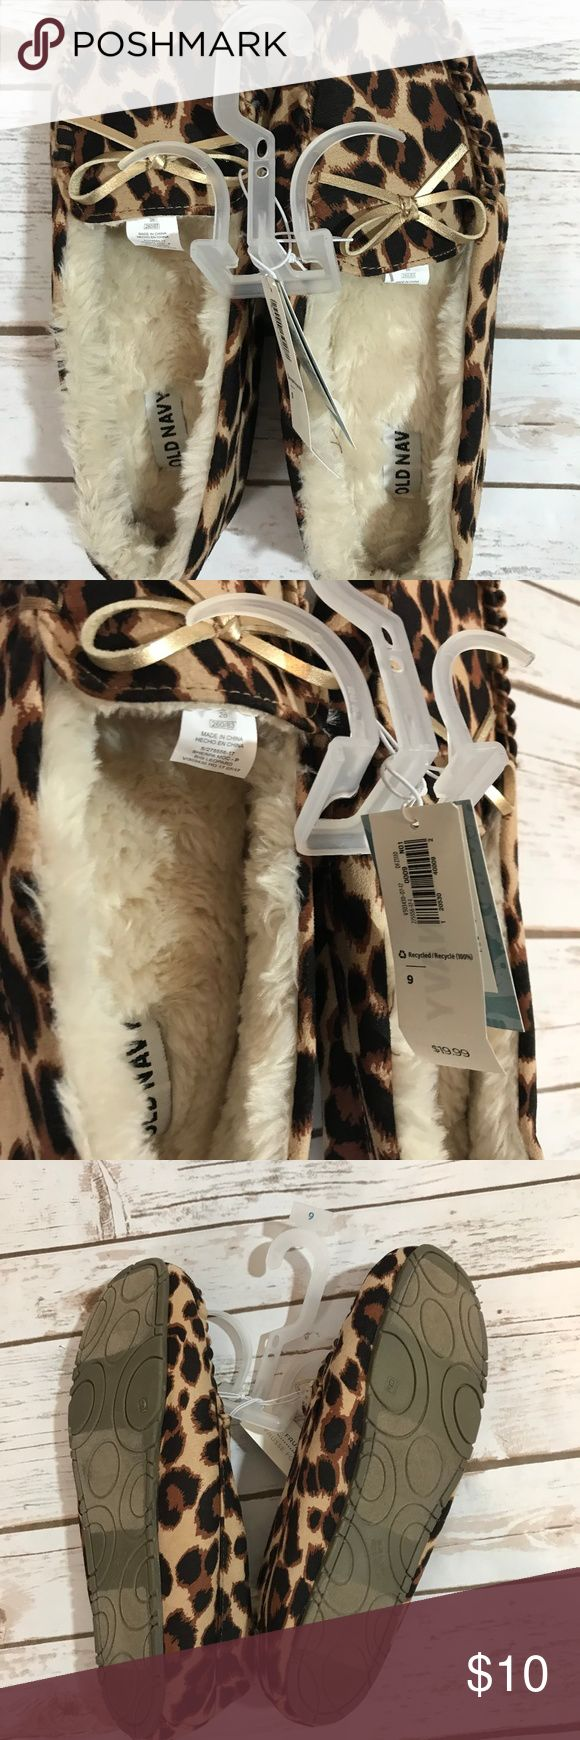 NWT Old Navy Leopard Print Slippers NWT Old Navy Leopard Print Slippers Old Navy Shoes Slippers